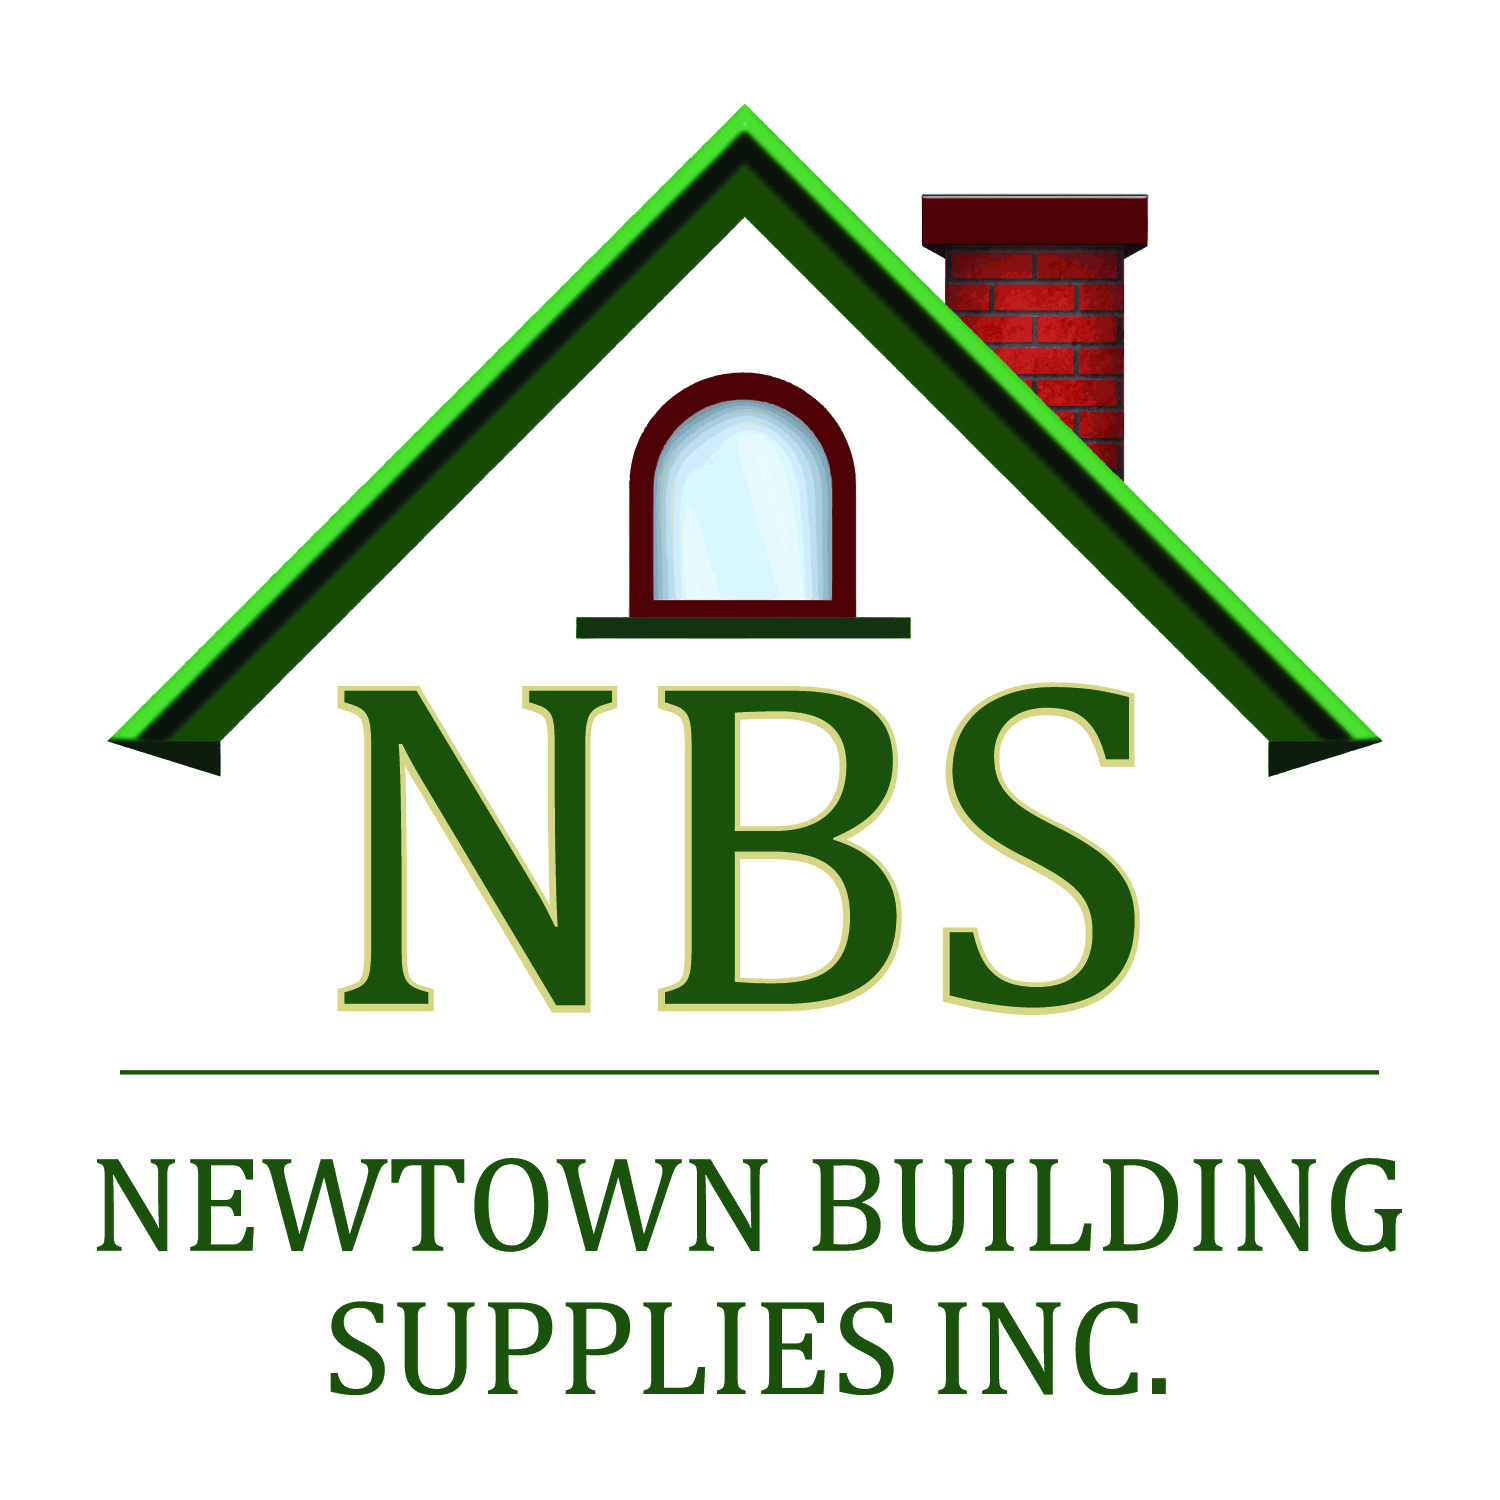 Newtown Building Supplies Flyer Rubin Communications